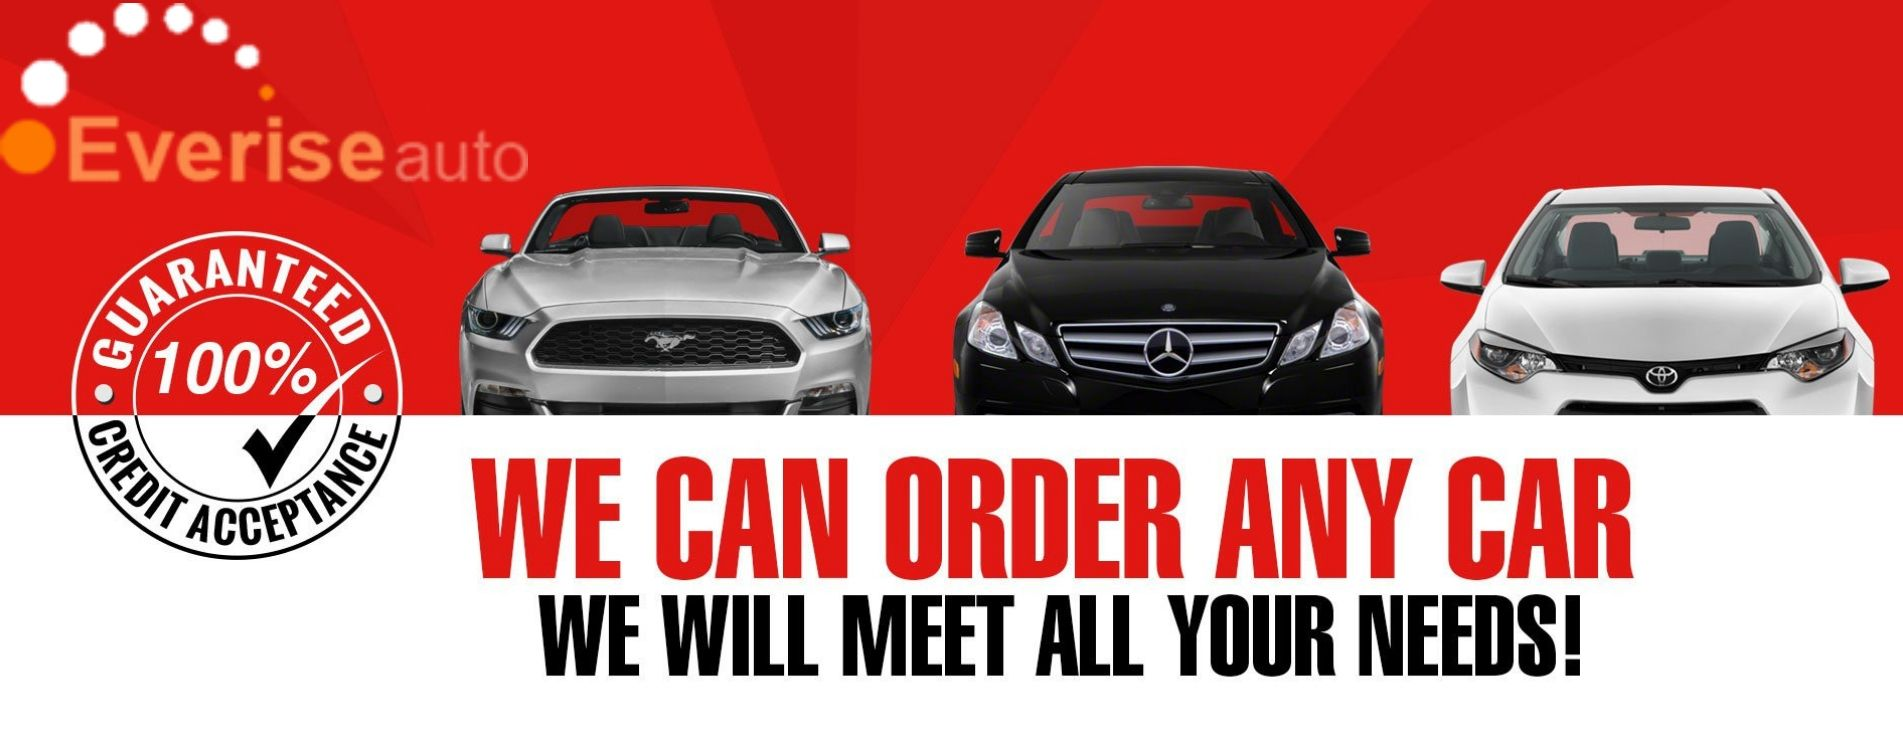 Buy Used Car In Singapore!! Everise Auto is situated in